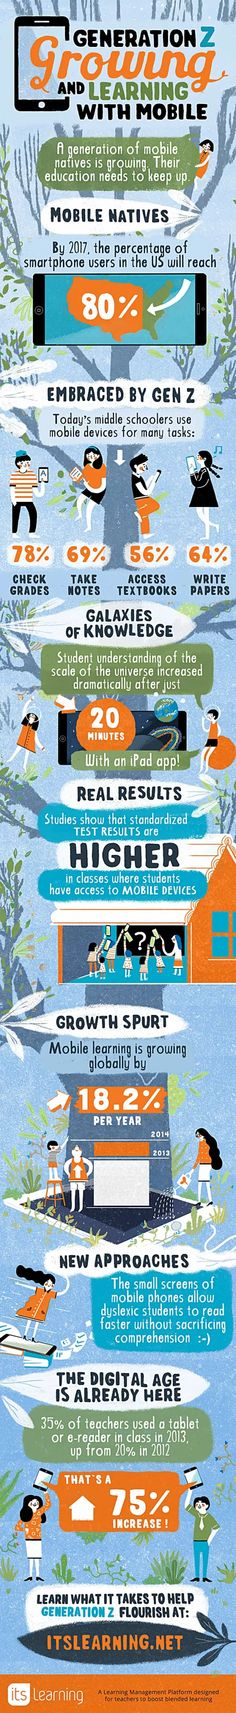 Generation Z Is Growing and Learning with Mobile Devices [#Infographic]   EdTech Magazine